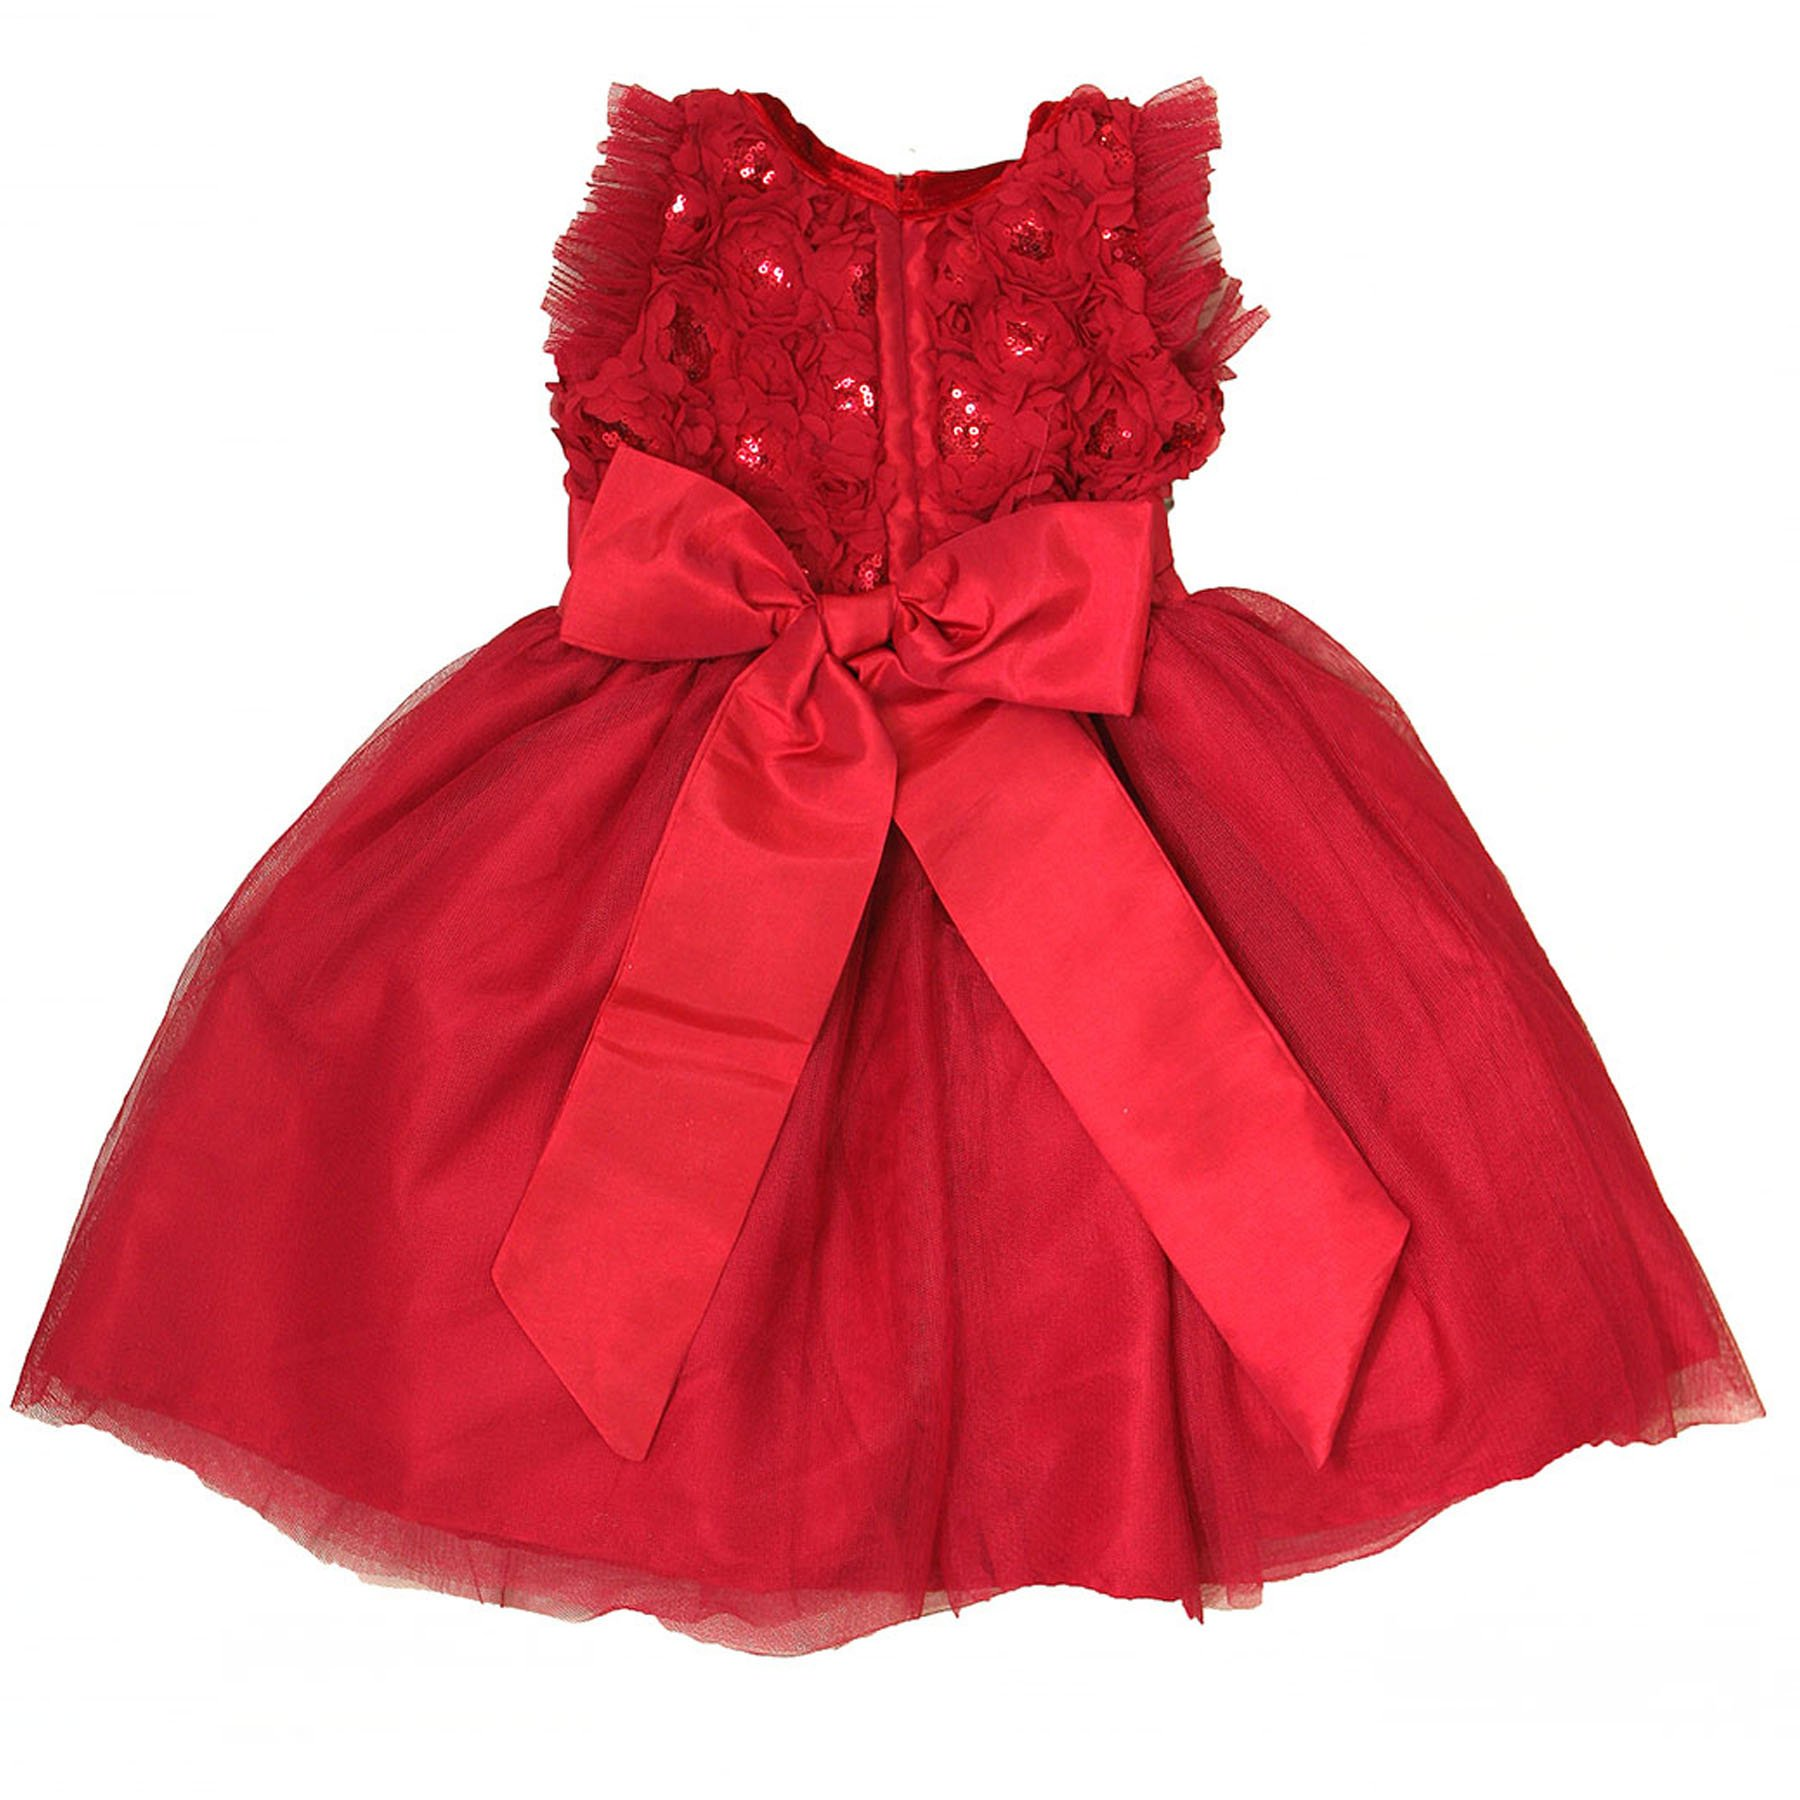 Holiday Toddler Dresses 111